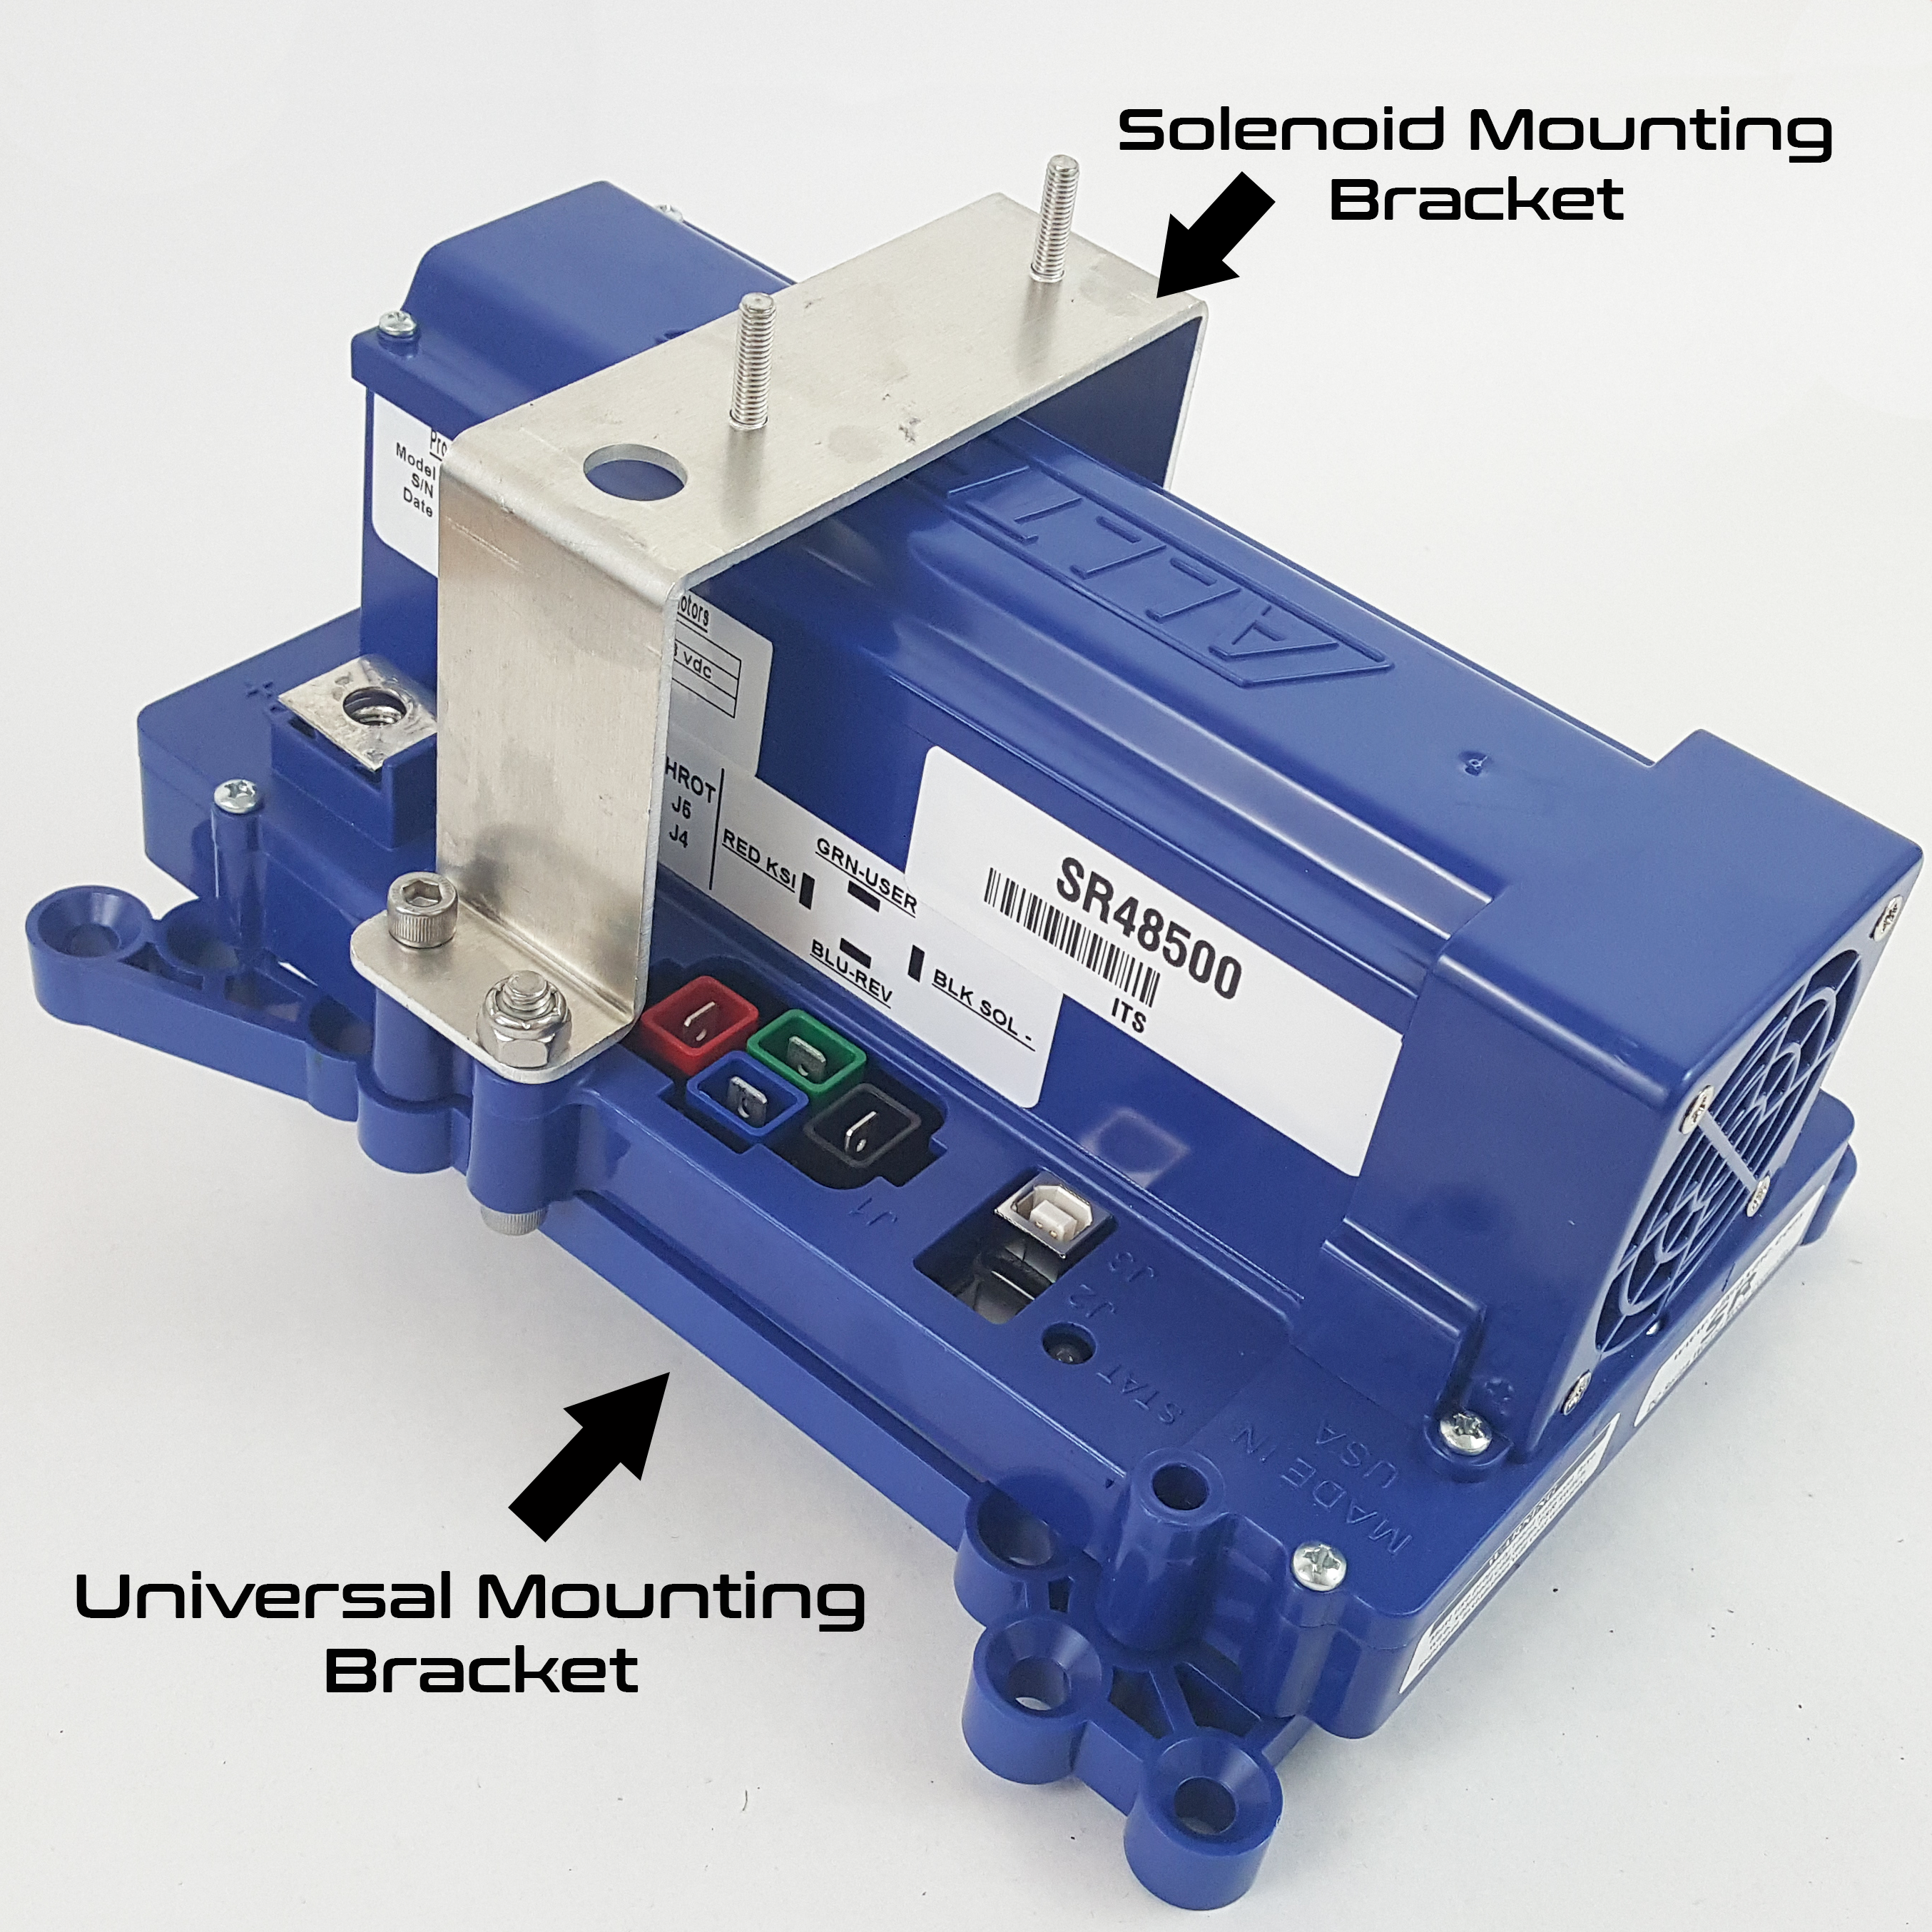 Sr Series Controllers Alltrax Free Download Wiring Diagram Ordered For Ez Go Come With The Universal Mounting Kit Solenoid Bracket And Hardware